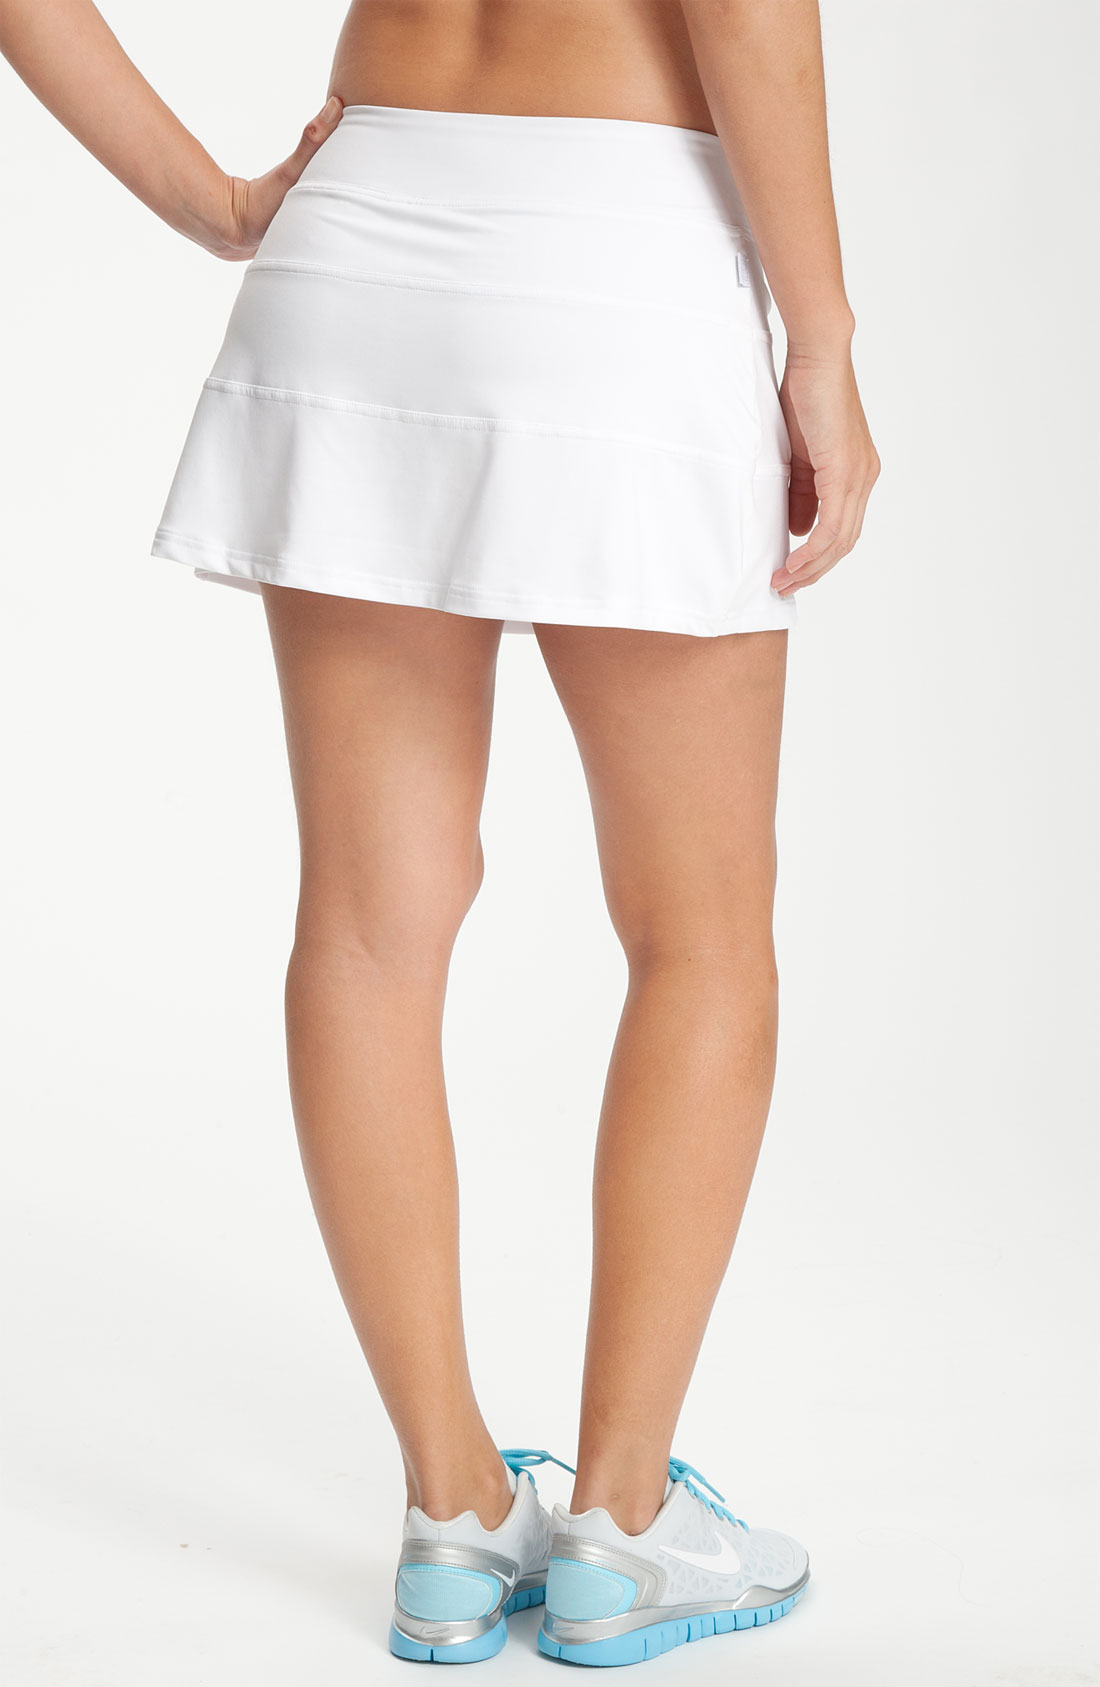 Find great deals on eBay for white tennis skirt. Shop with confidence.